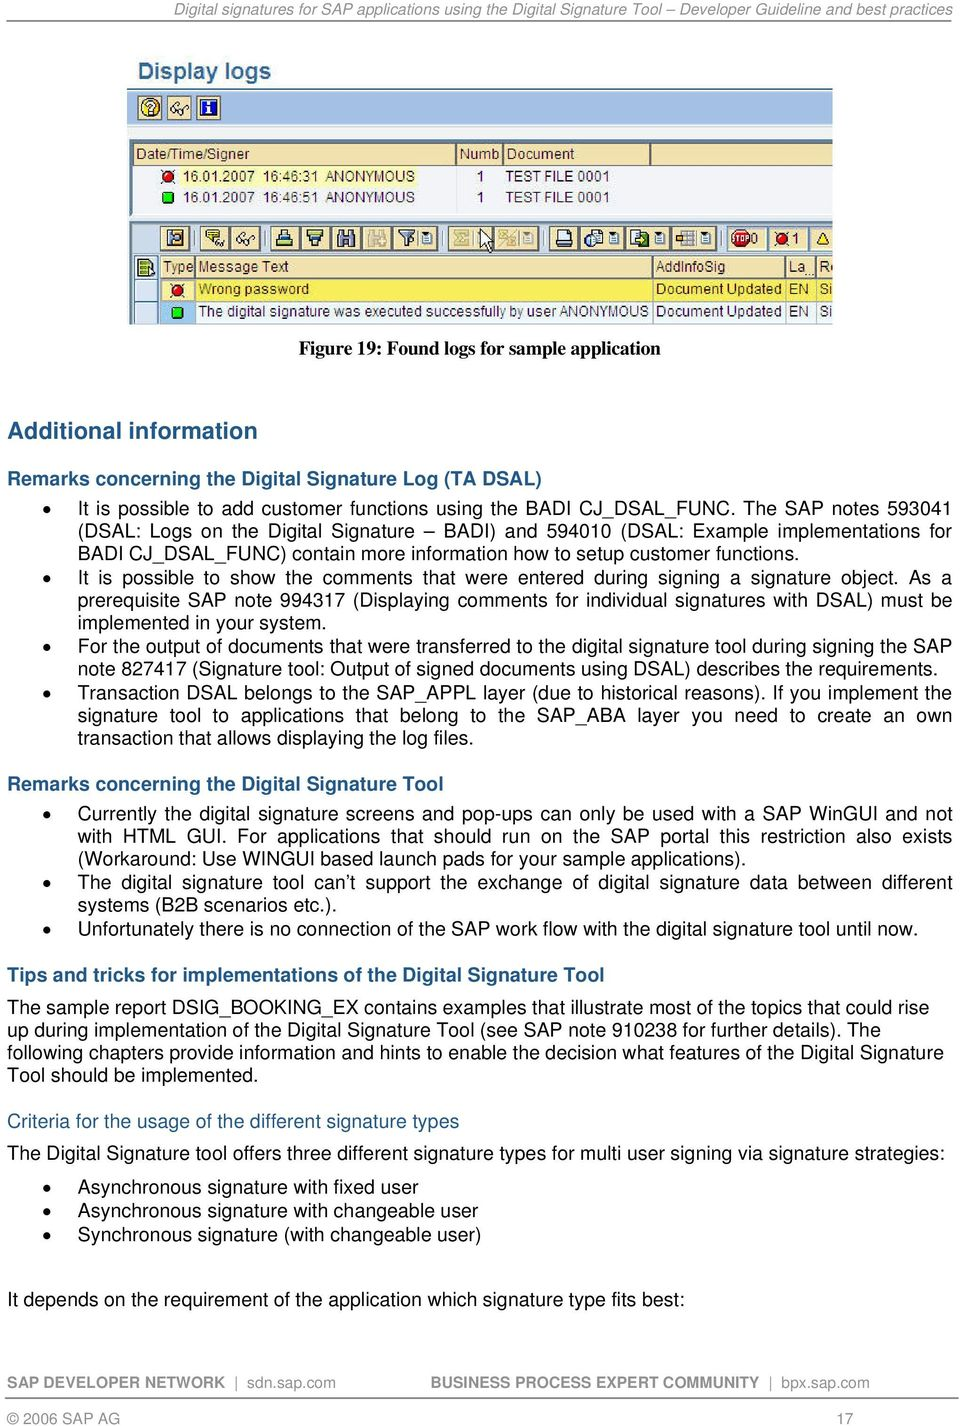 digital signature on all pages pdf